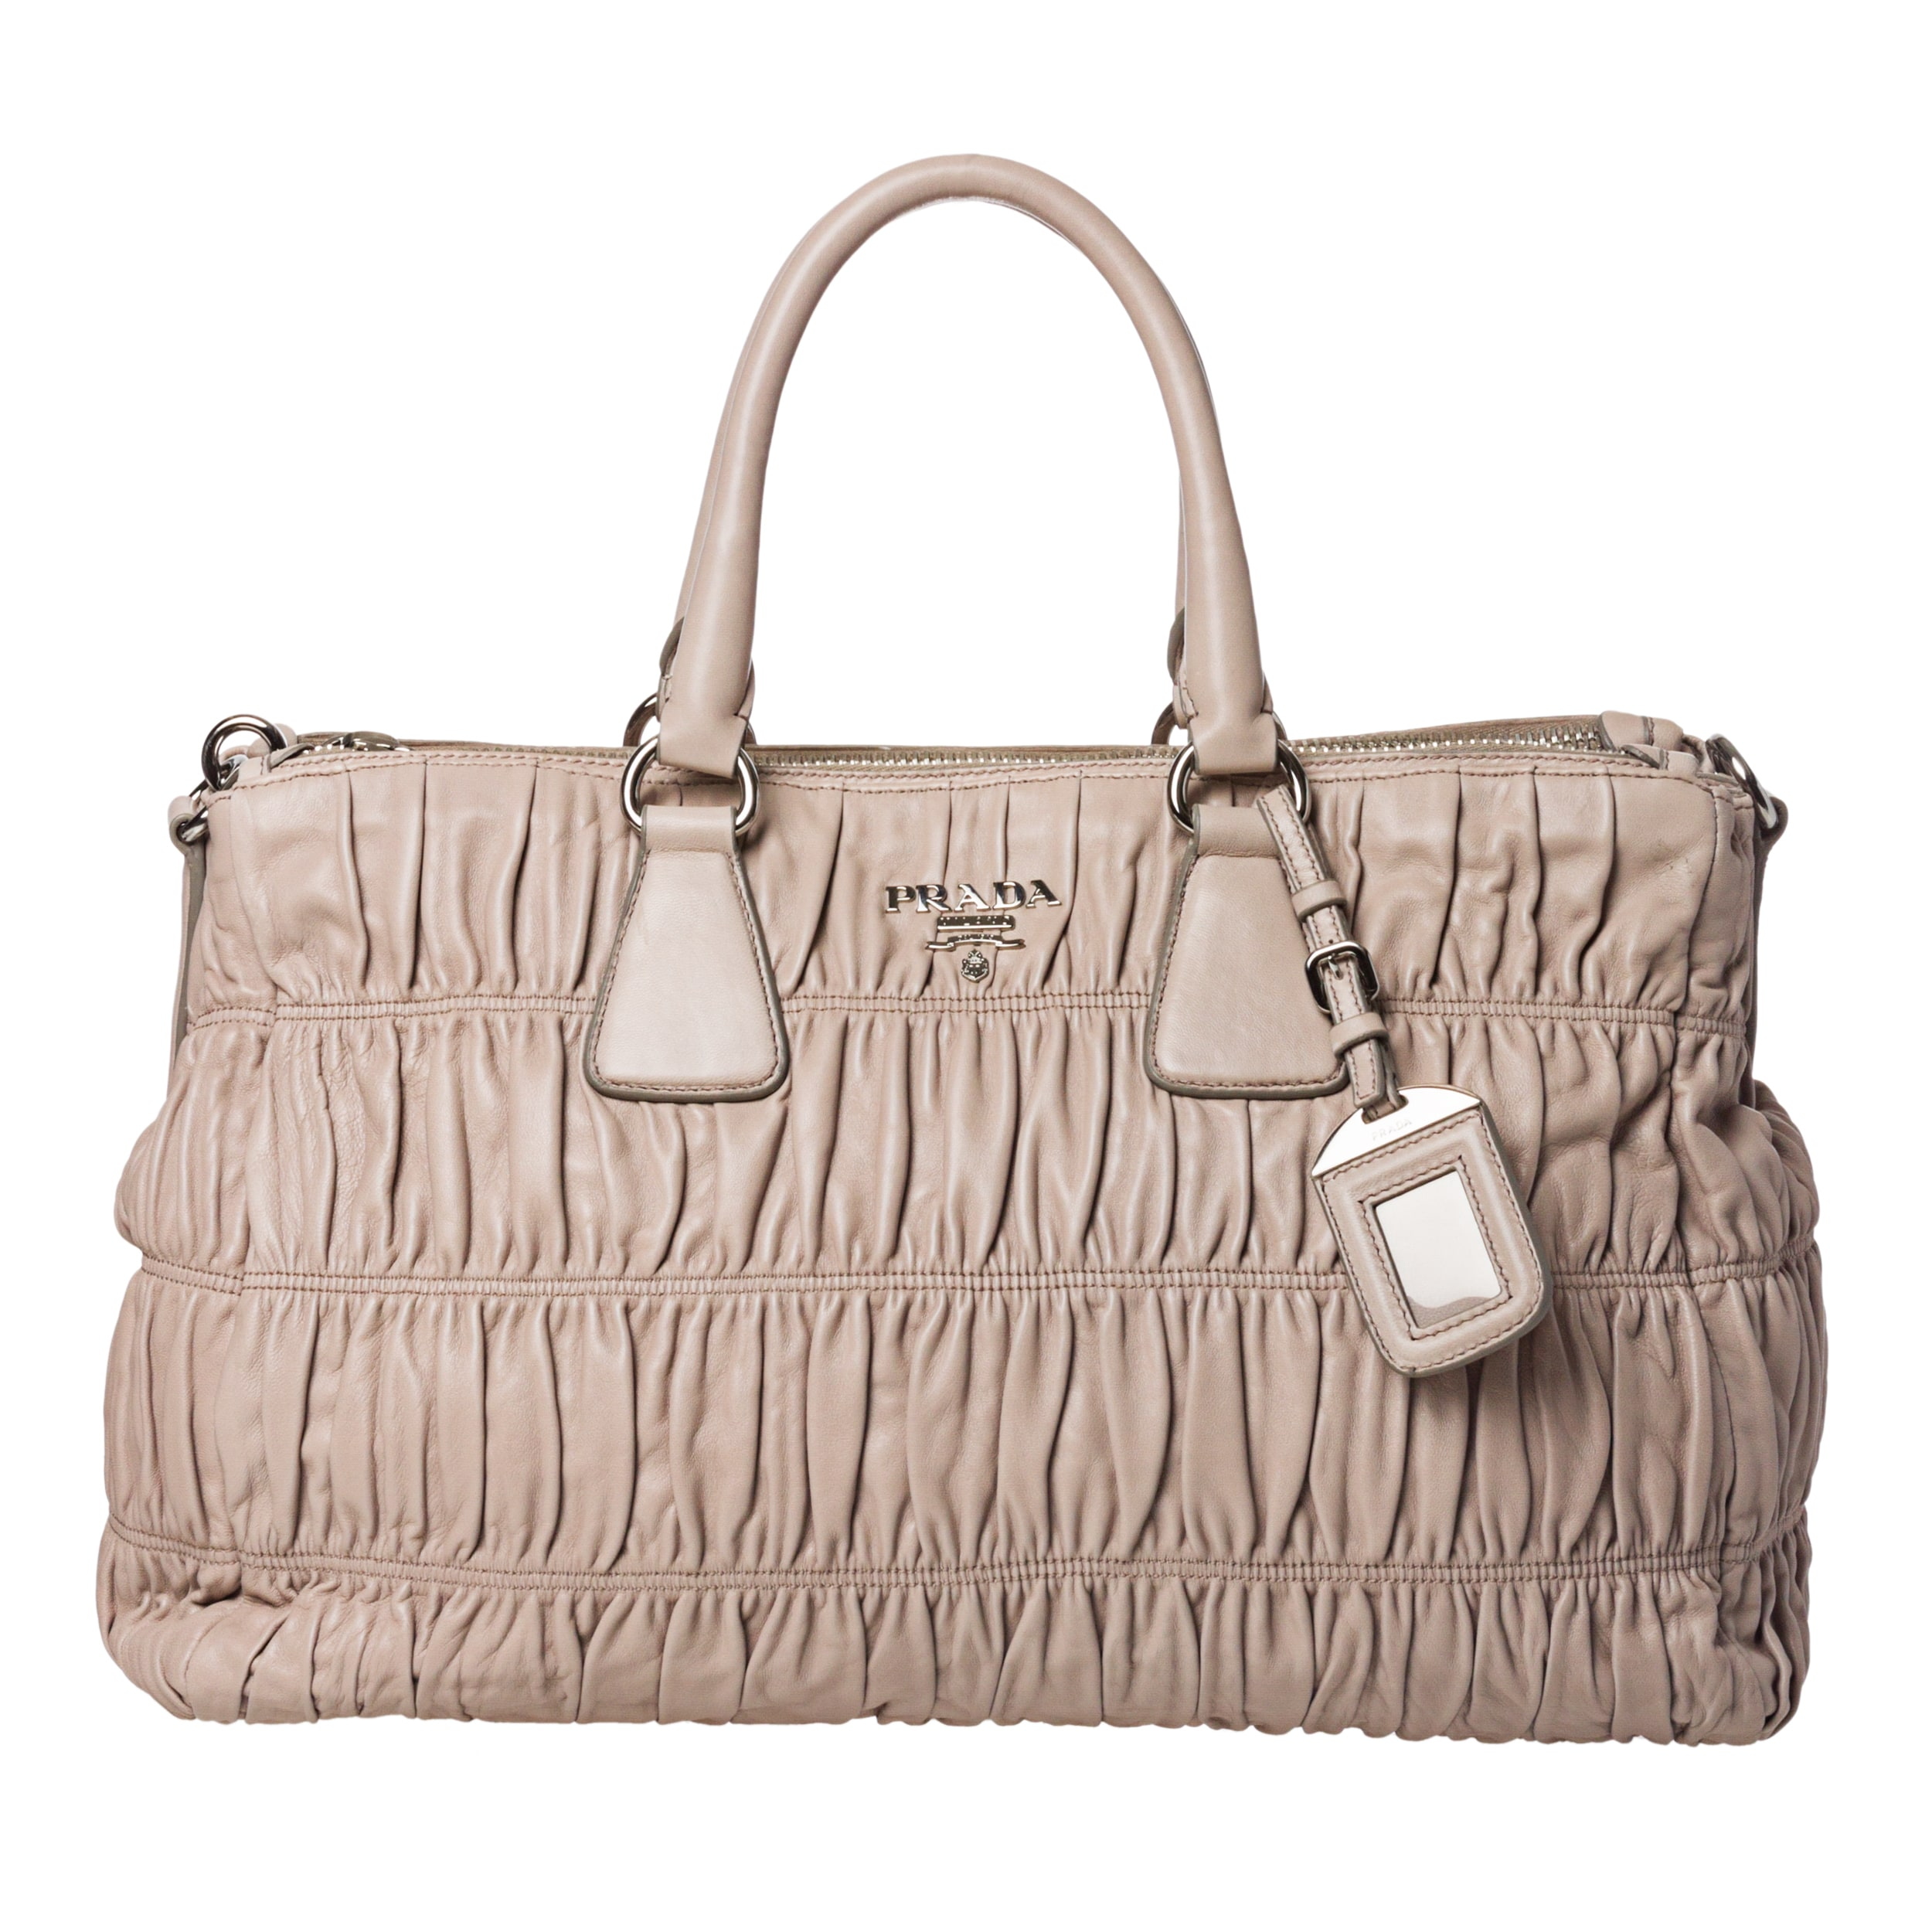 Prada Taupe Ruched Leather Satchel Bag - 14294551 - Overstock.com ...